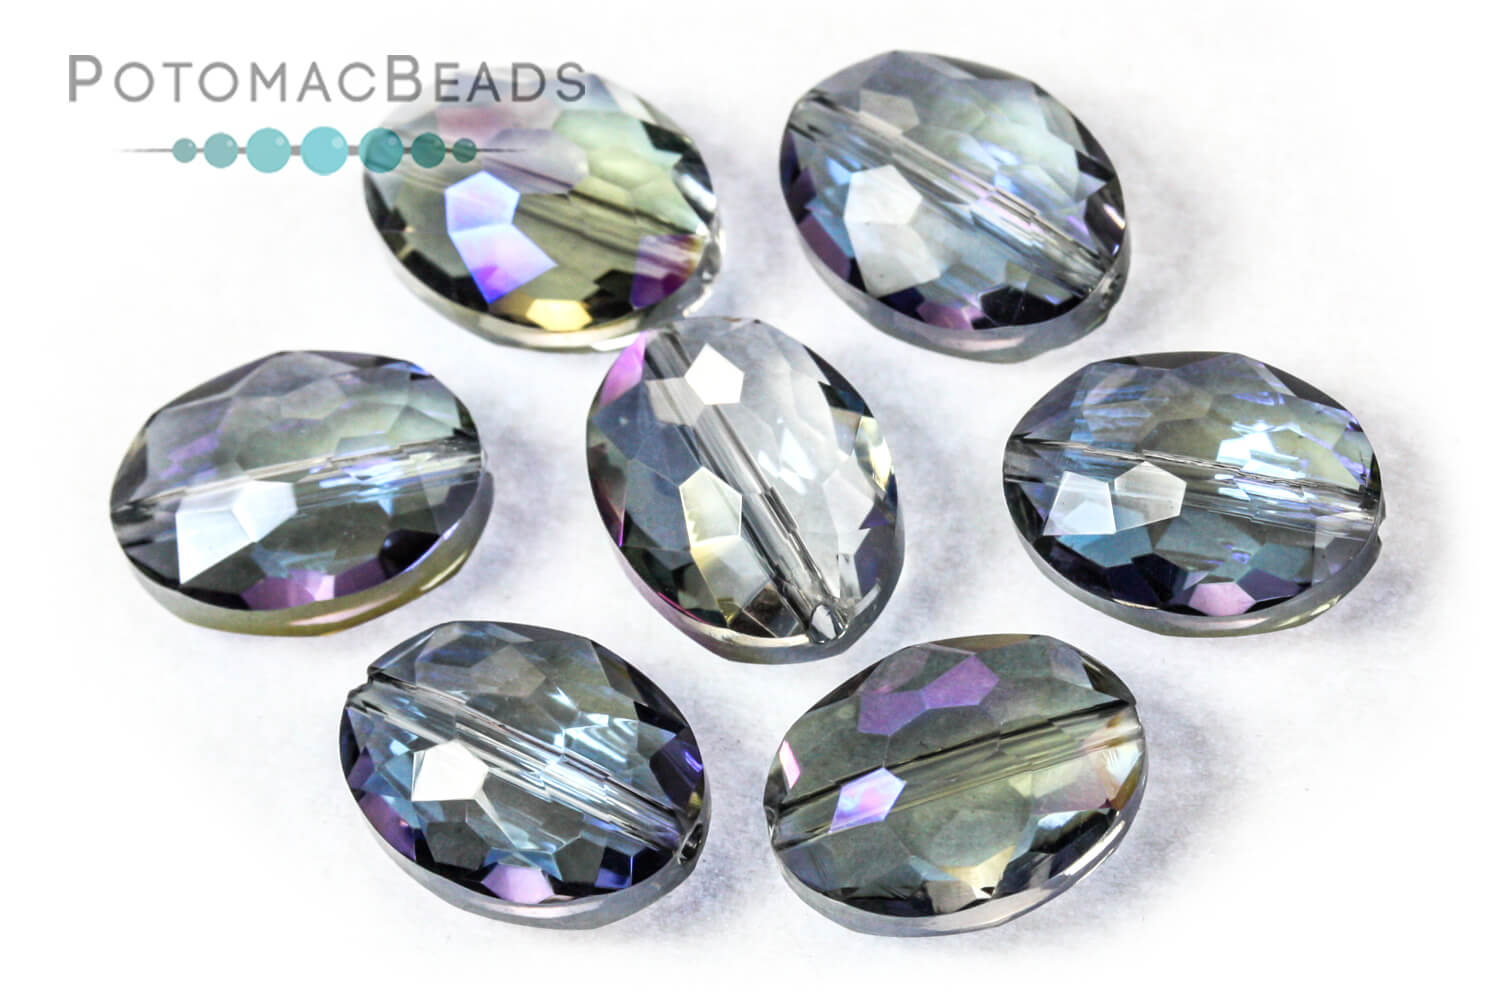 Potomac Exclusives / Potomac Crystals (All) / Potomac Crystal Oval Nugget Beads